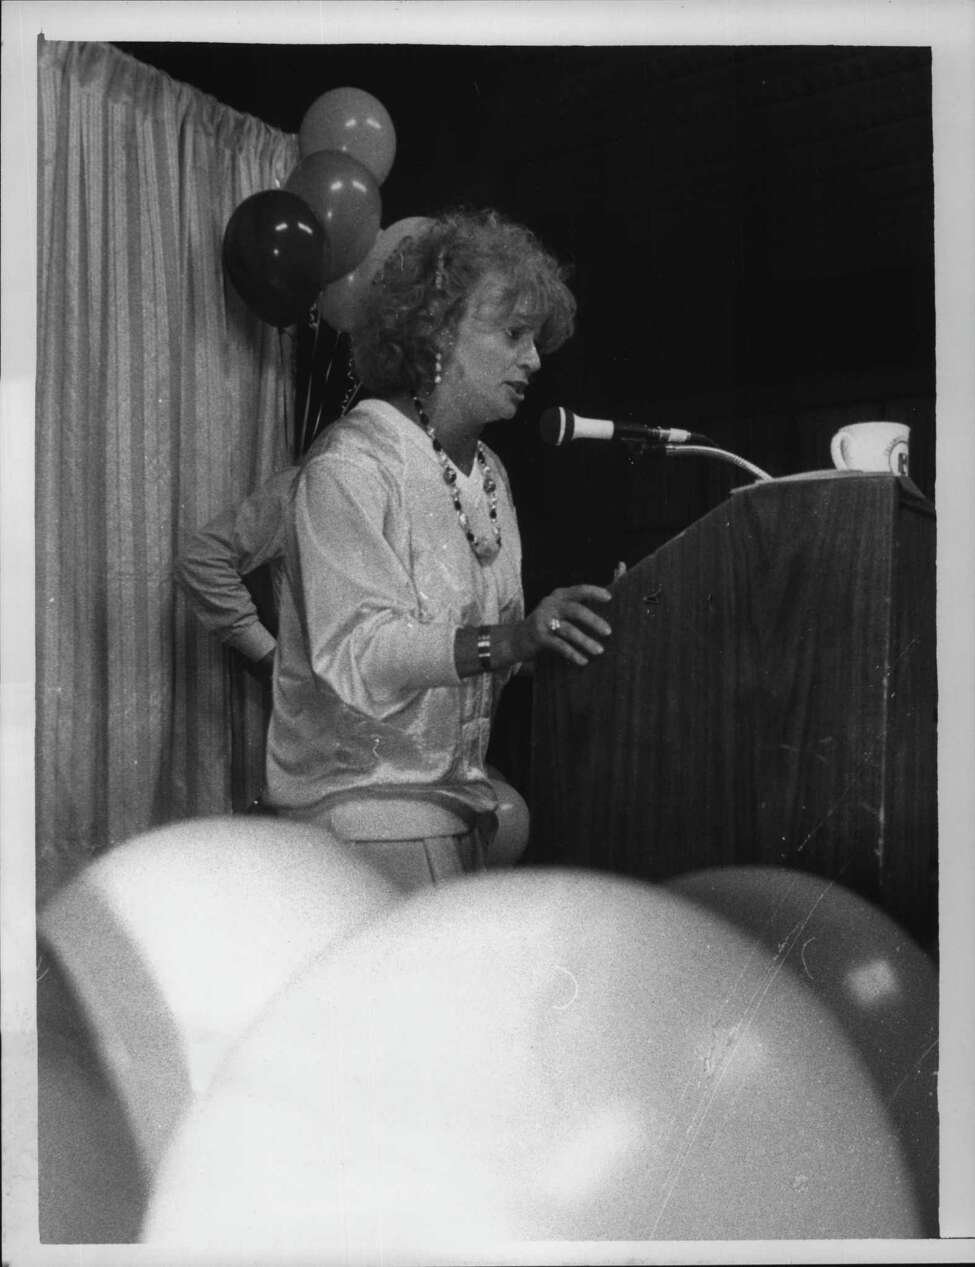 Mimi Scott at the Turf Inn, sings show tunes for $100 donation. April 9, 1986 (Paul D. Kniskern Sr./Times Union Archive)